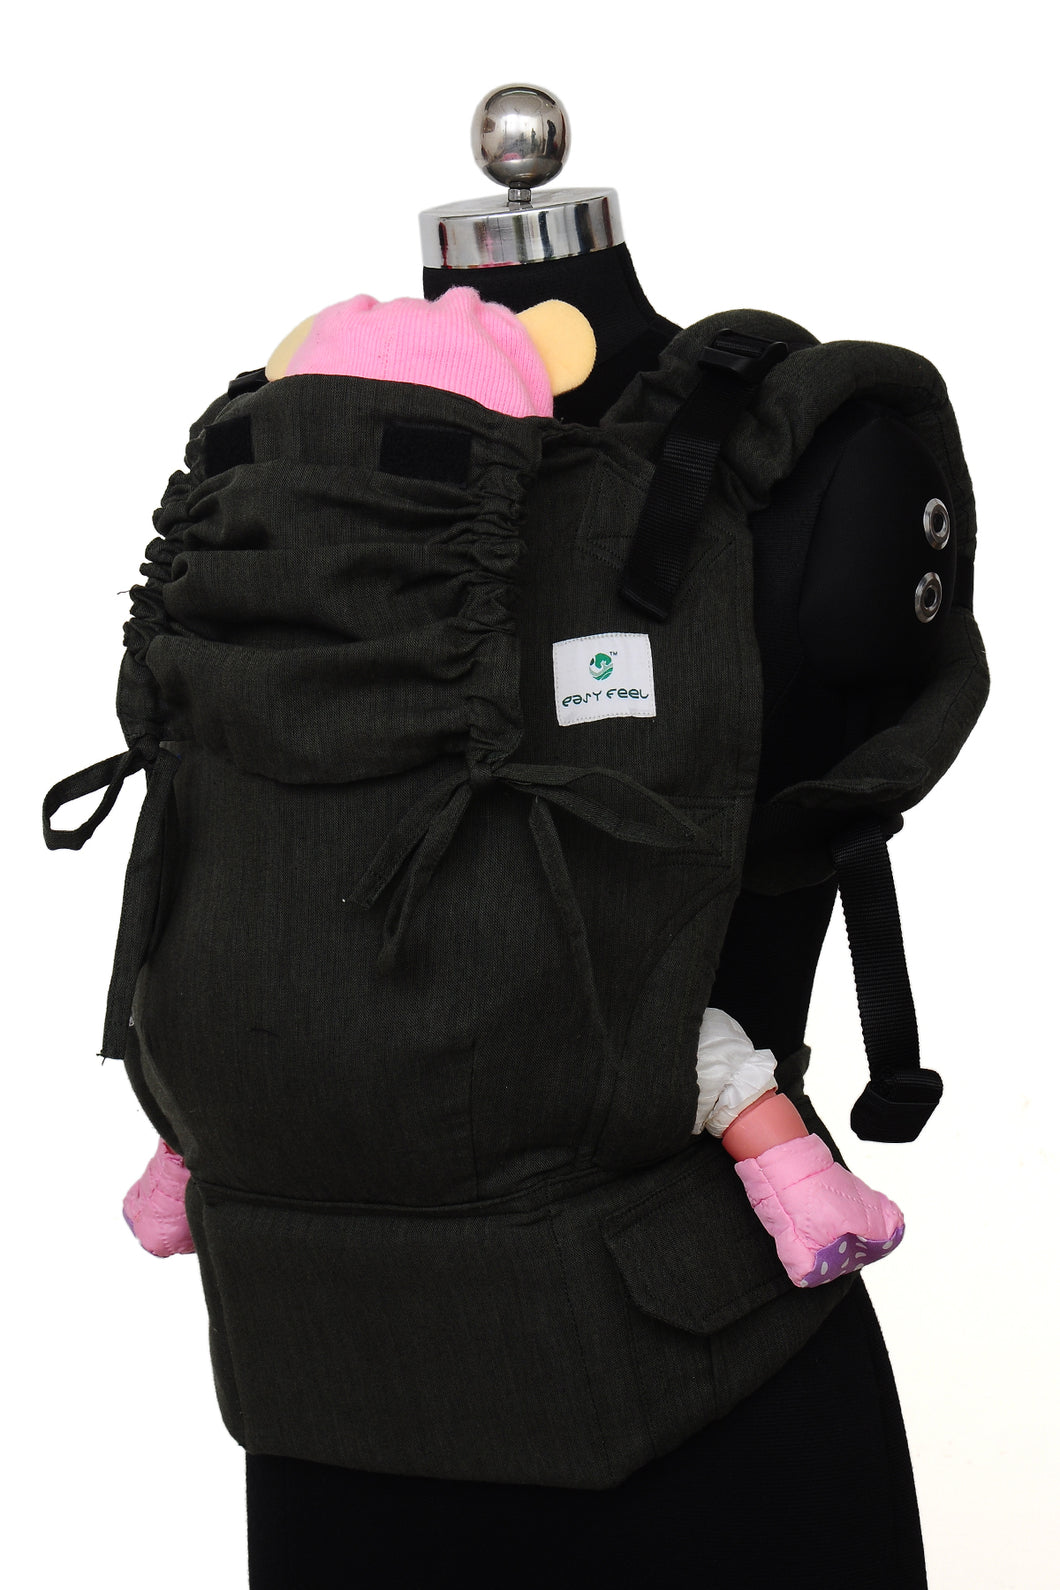 Toddler Soft Structured Carrier - Coal